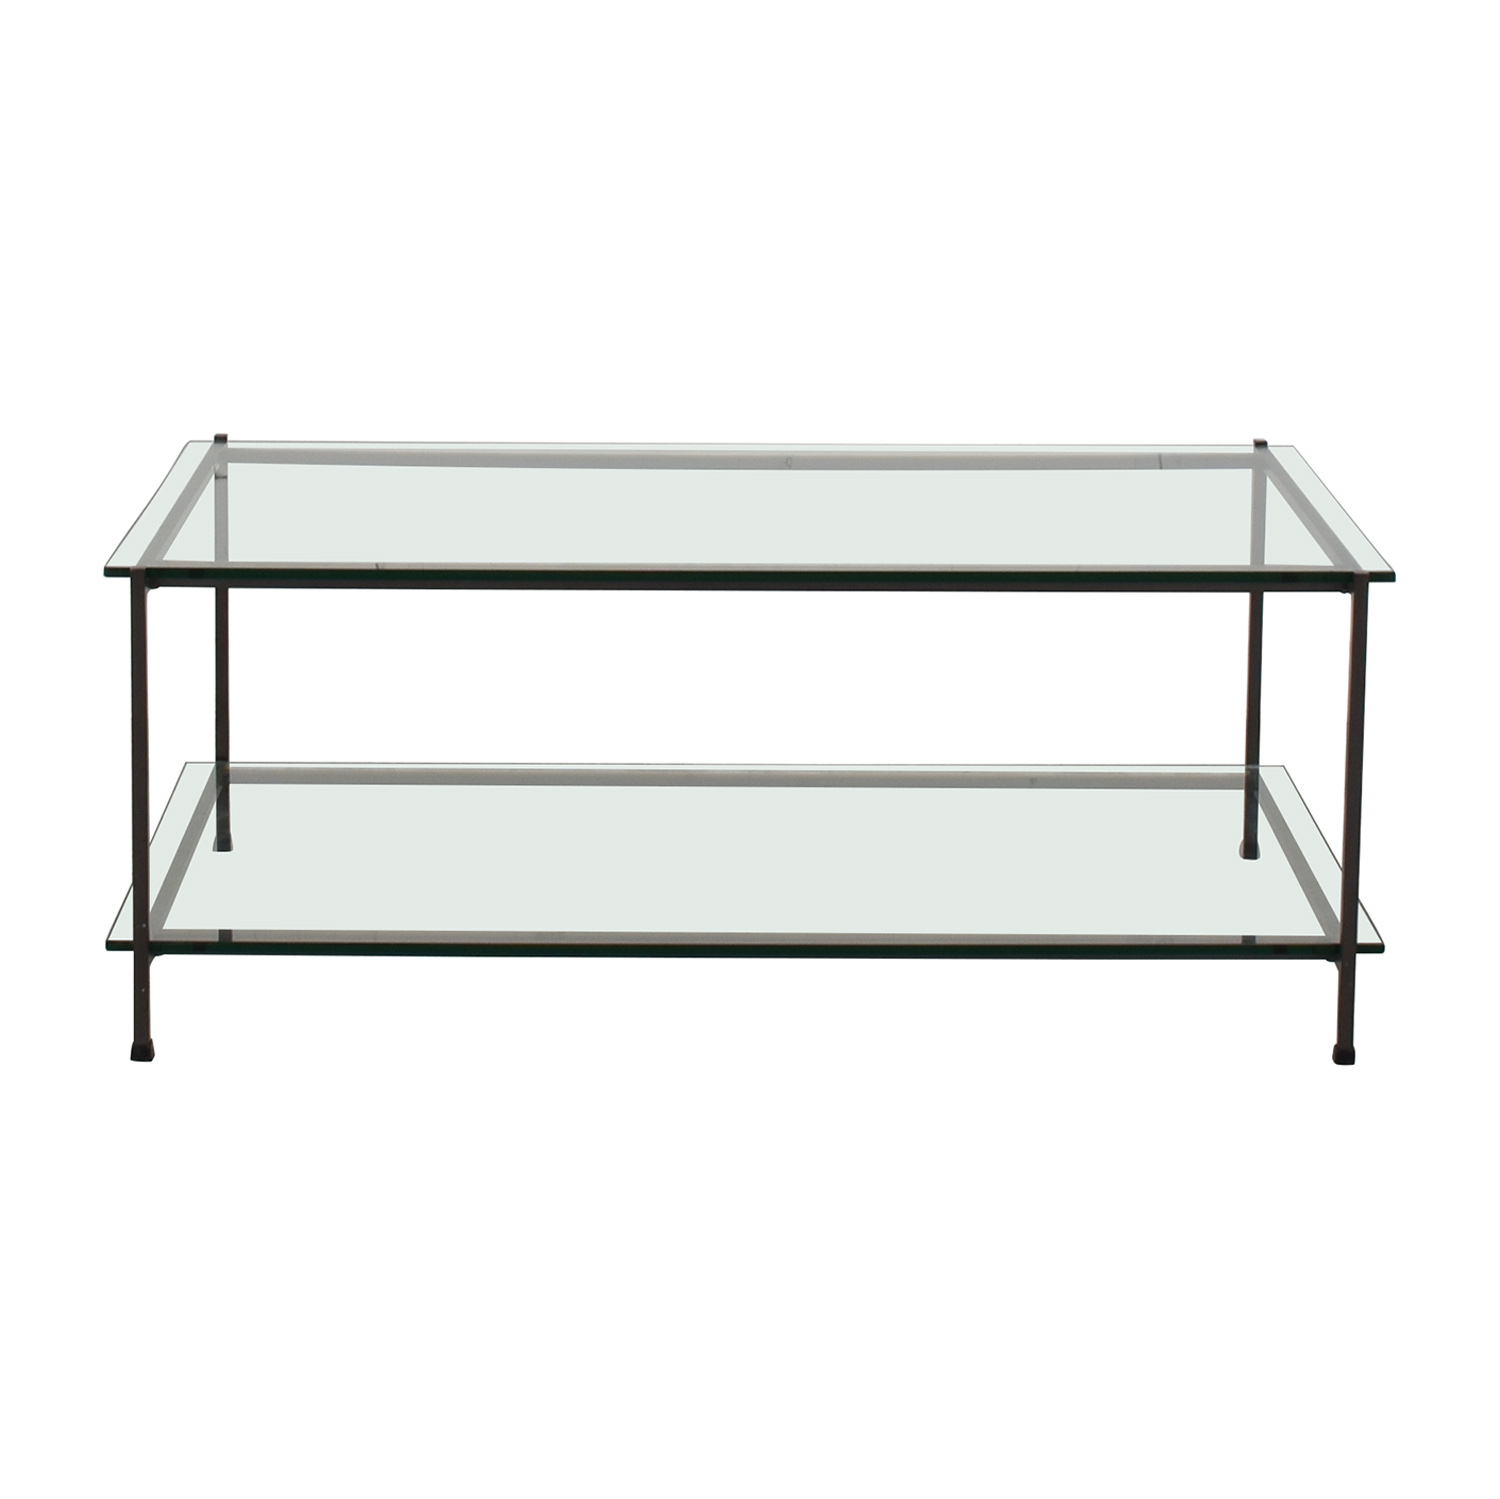 West Elm West Elm Glass Coffee Table